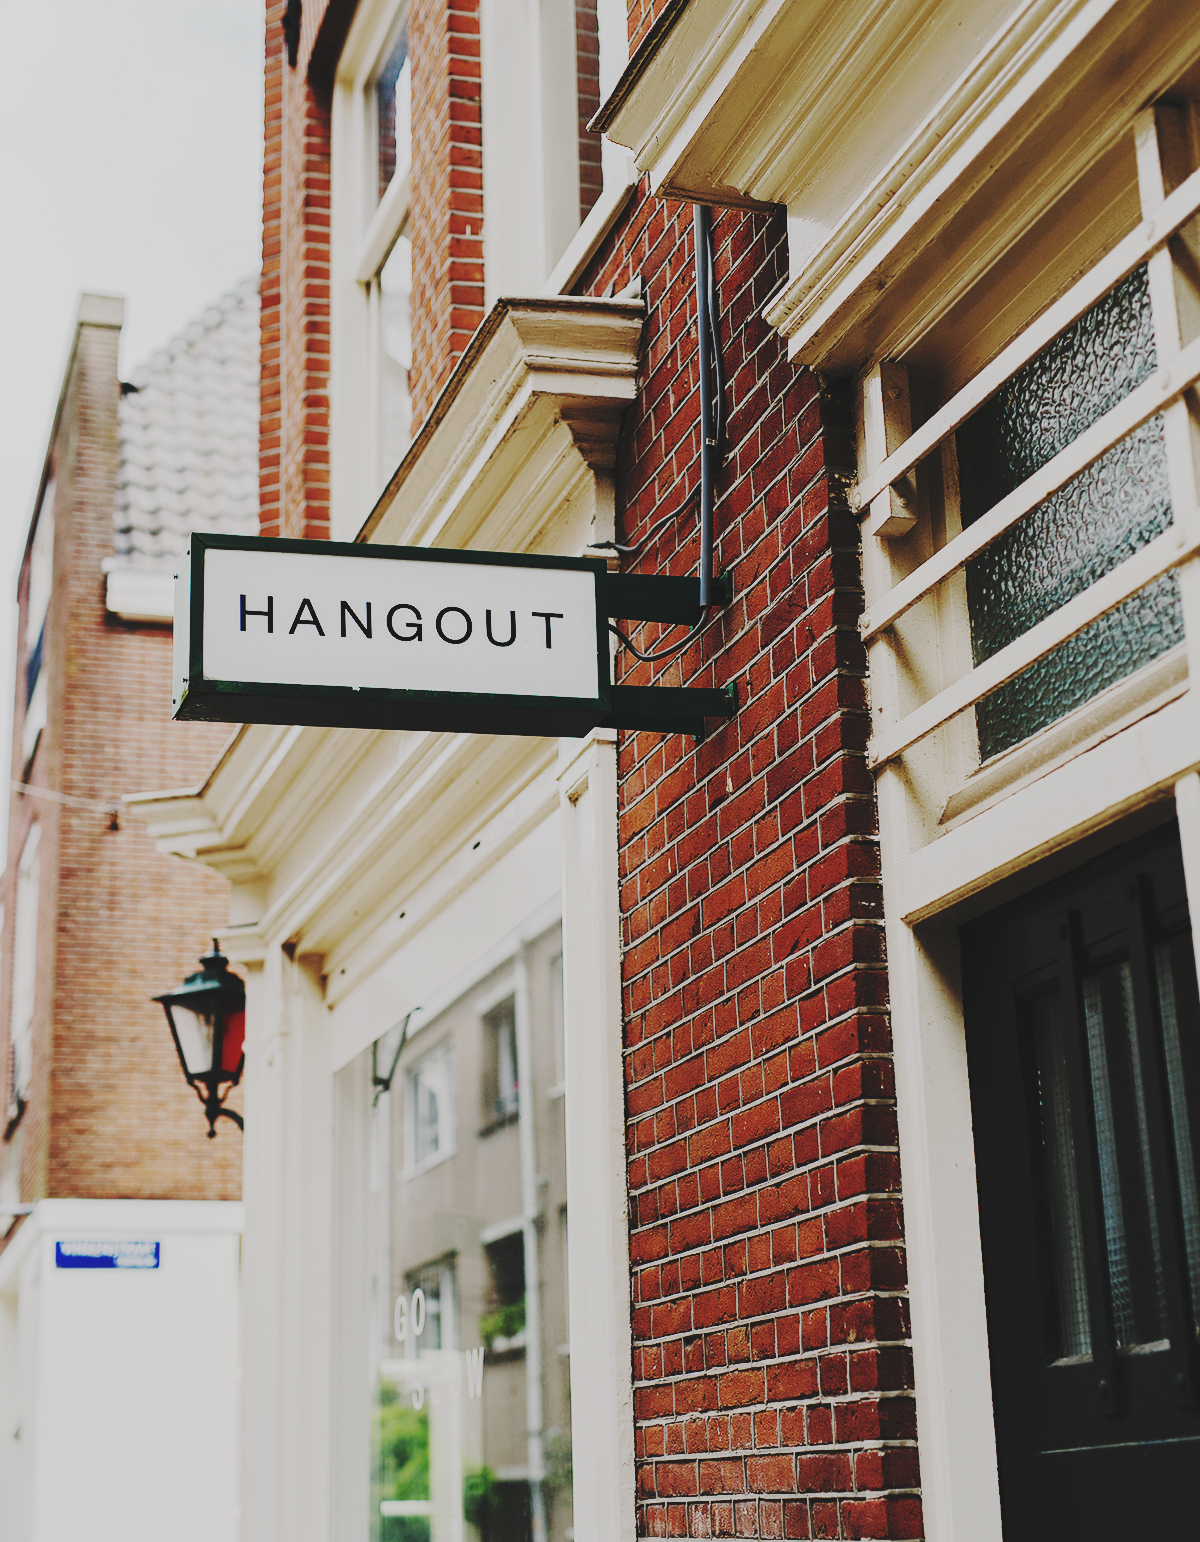 Hangout at TOKI café in Amsterdam, Netherlands.